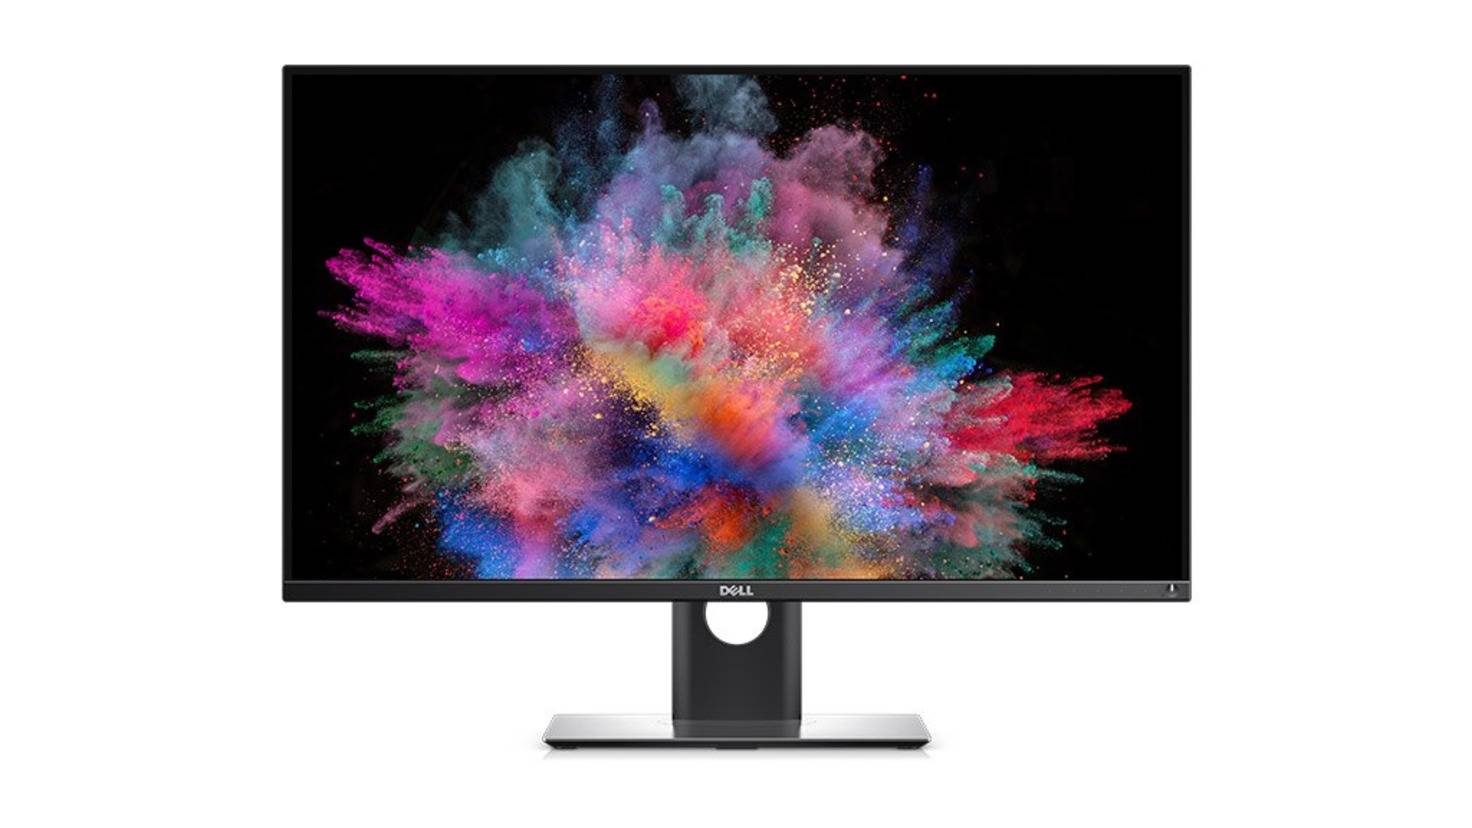 Dell-UP3017Q-OLED-Monitor